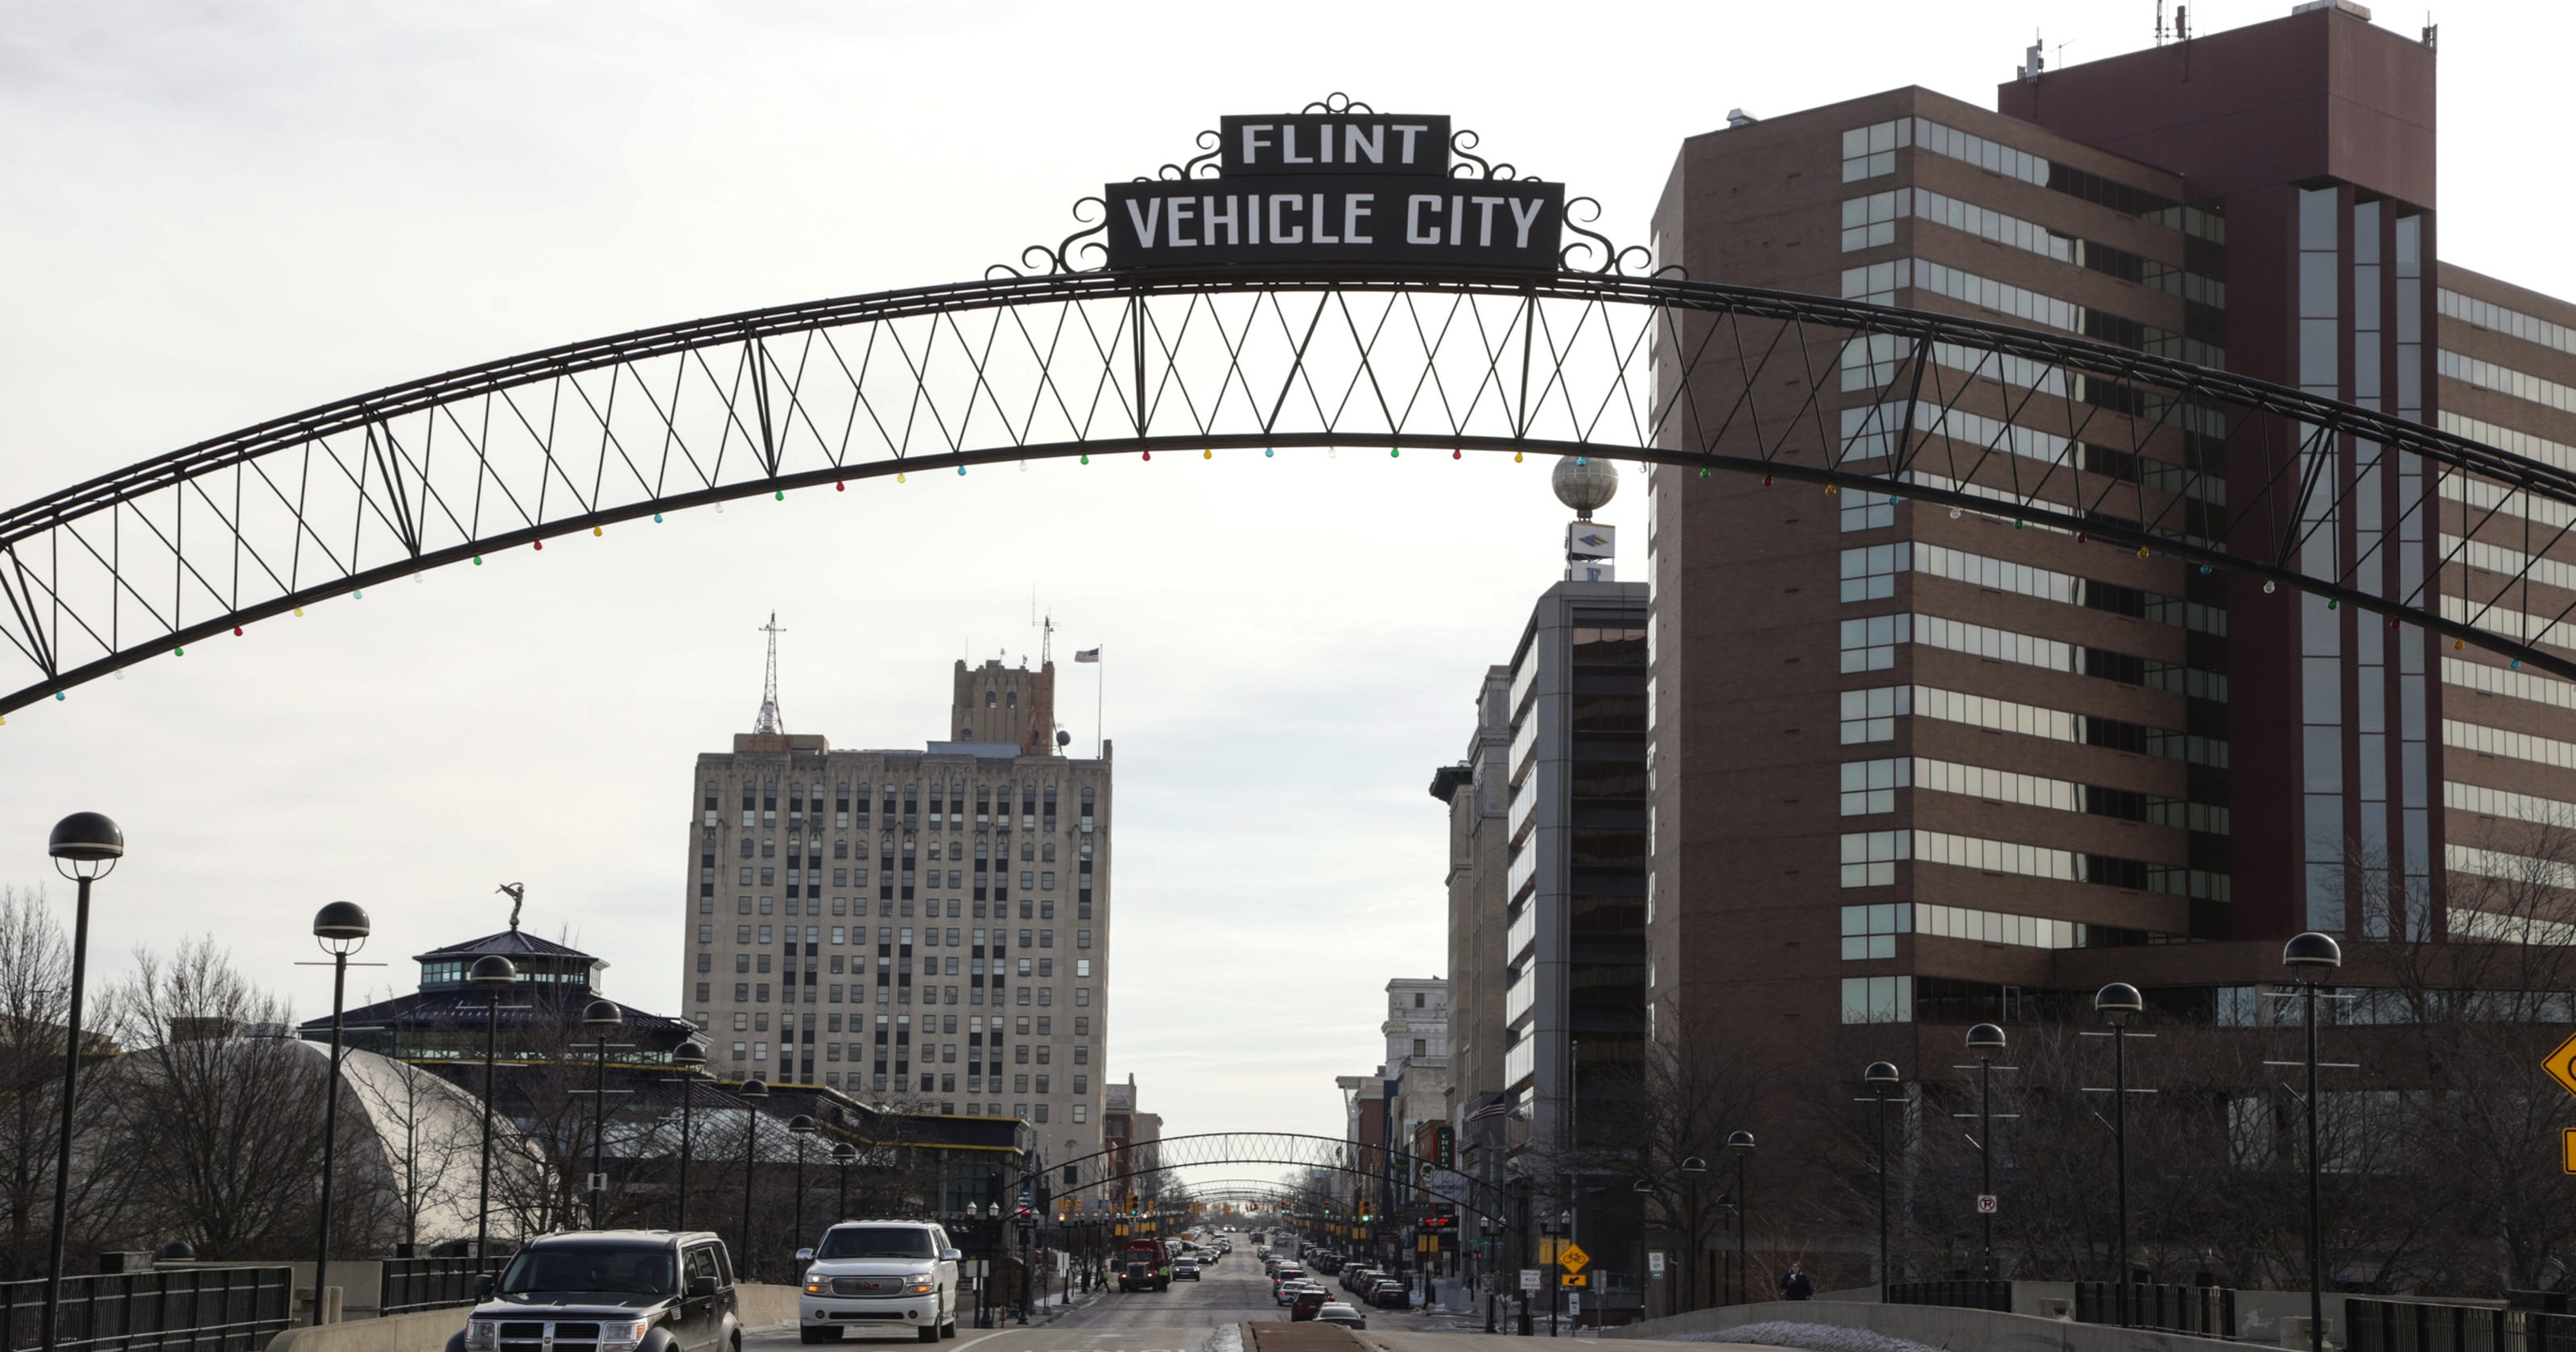 Water woes could sink Flint's property values even more